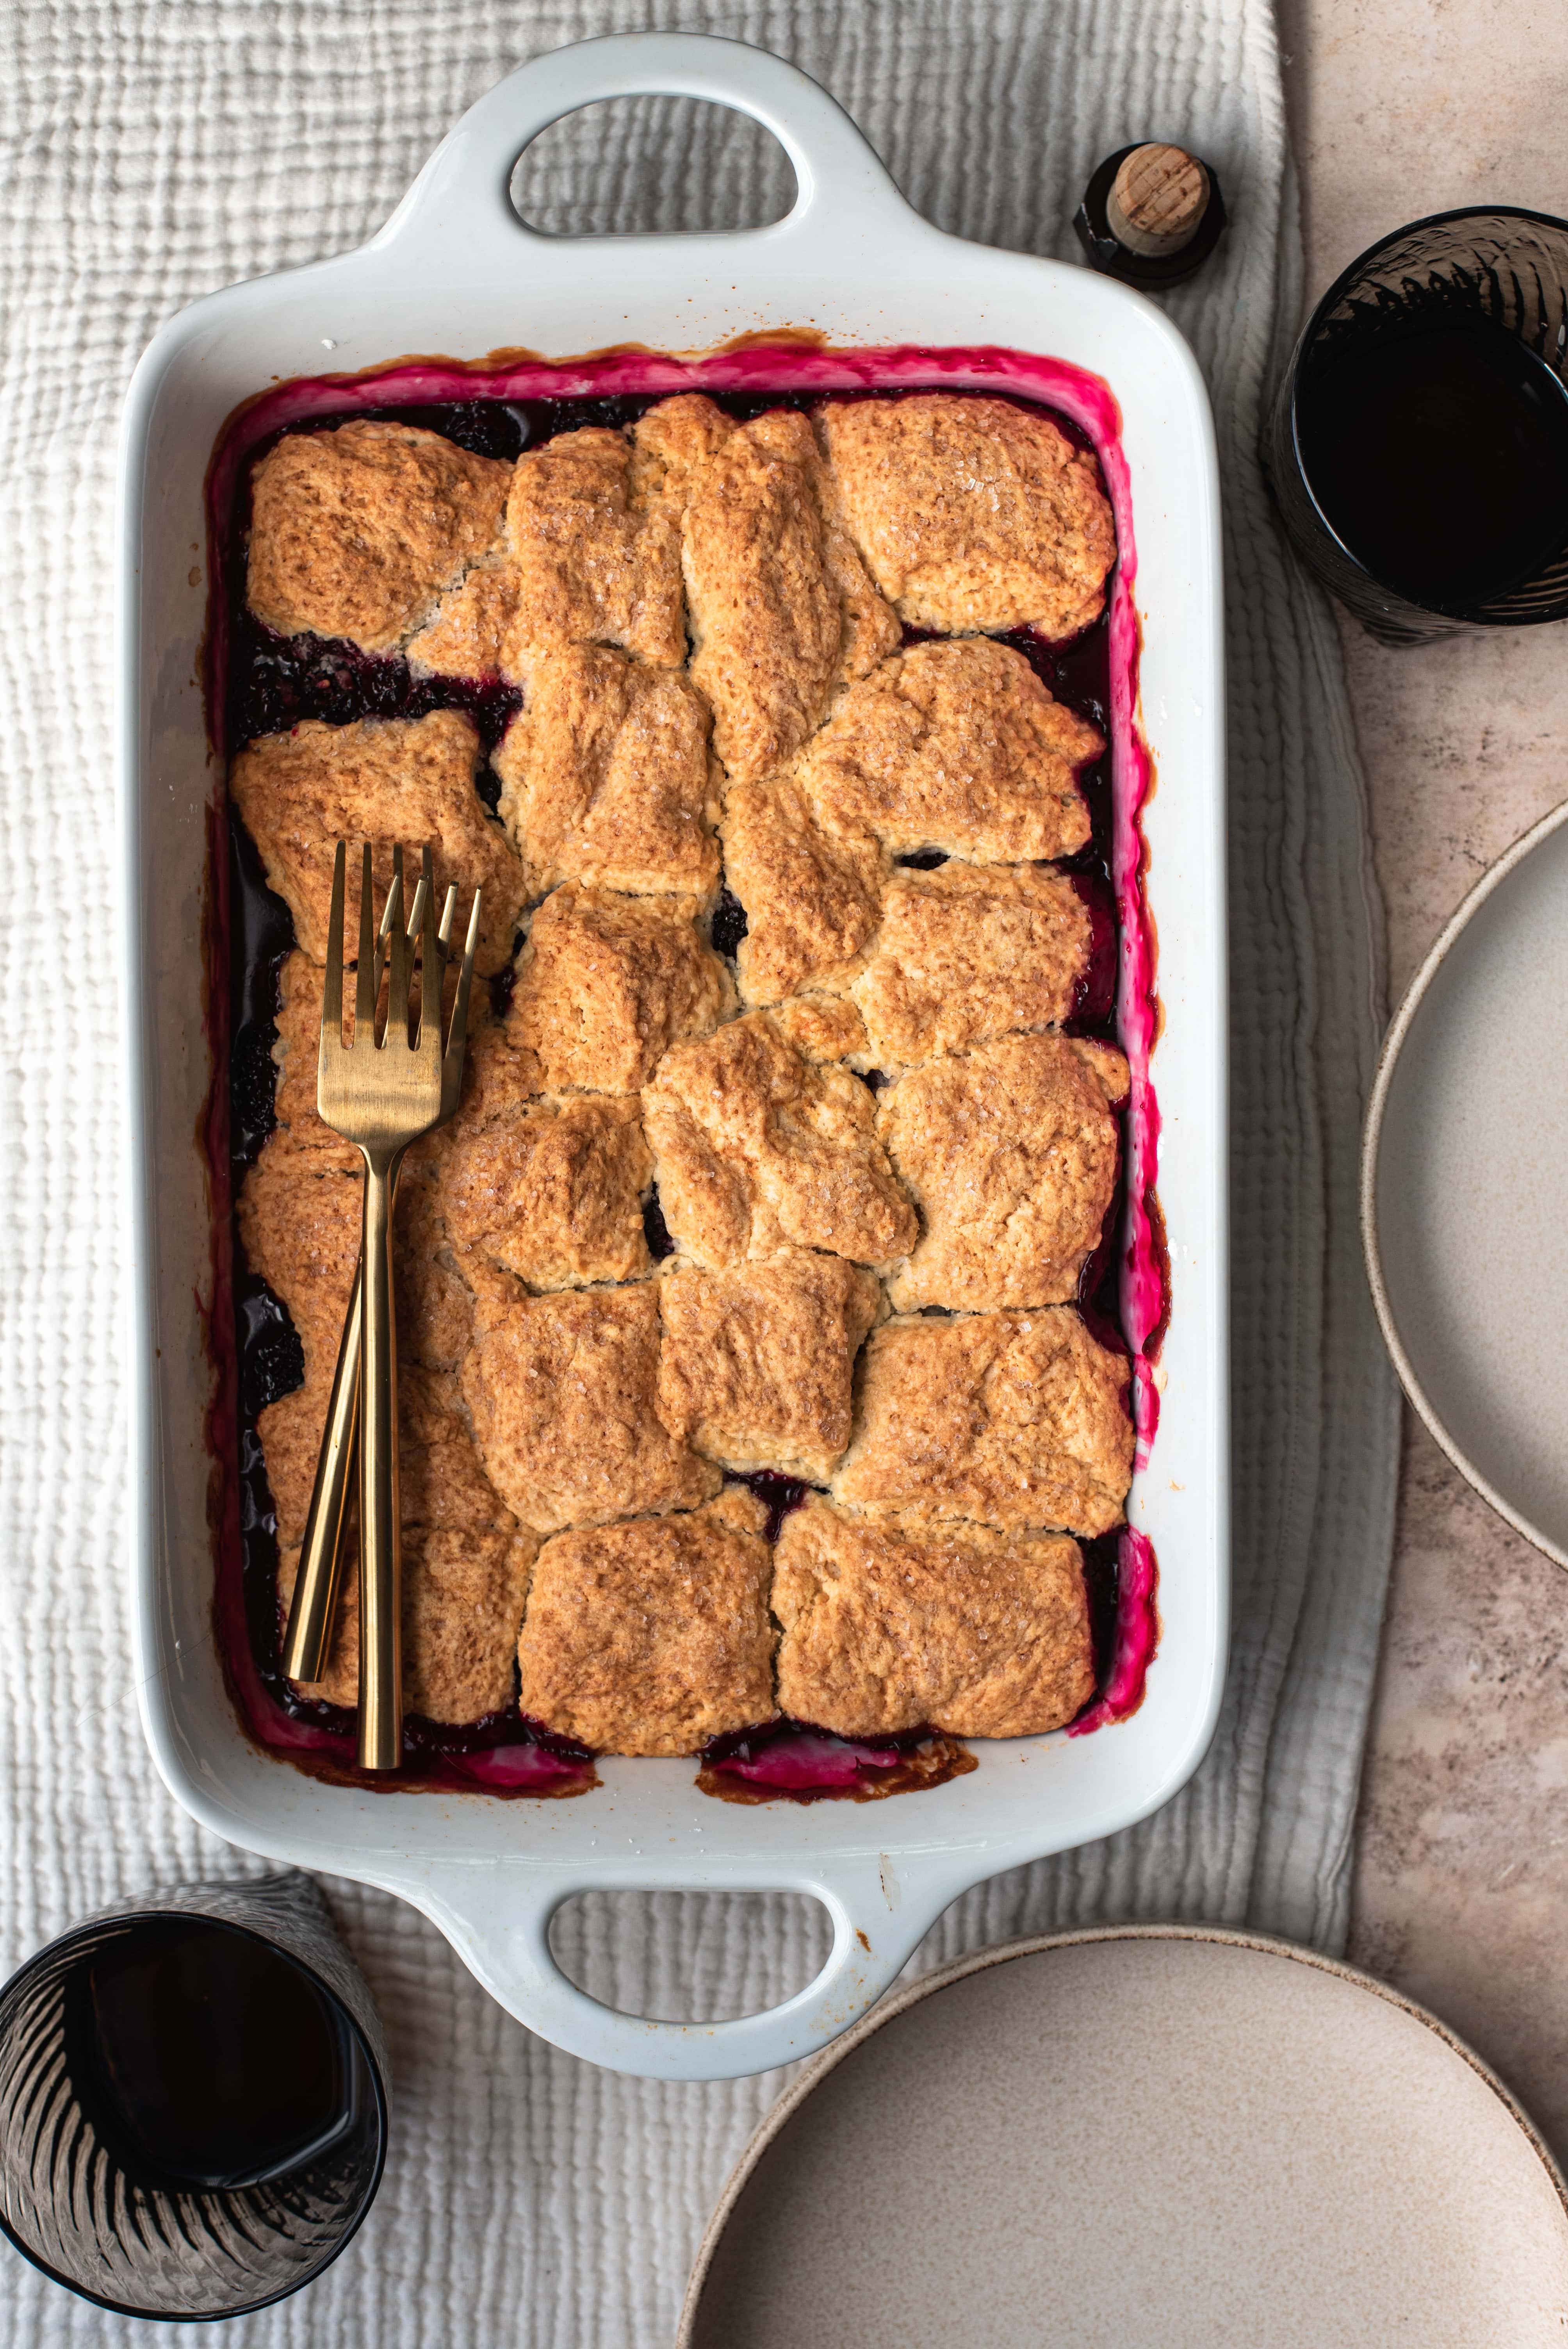 Bourbon Blackberry Cobbler right out of the oven